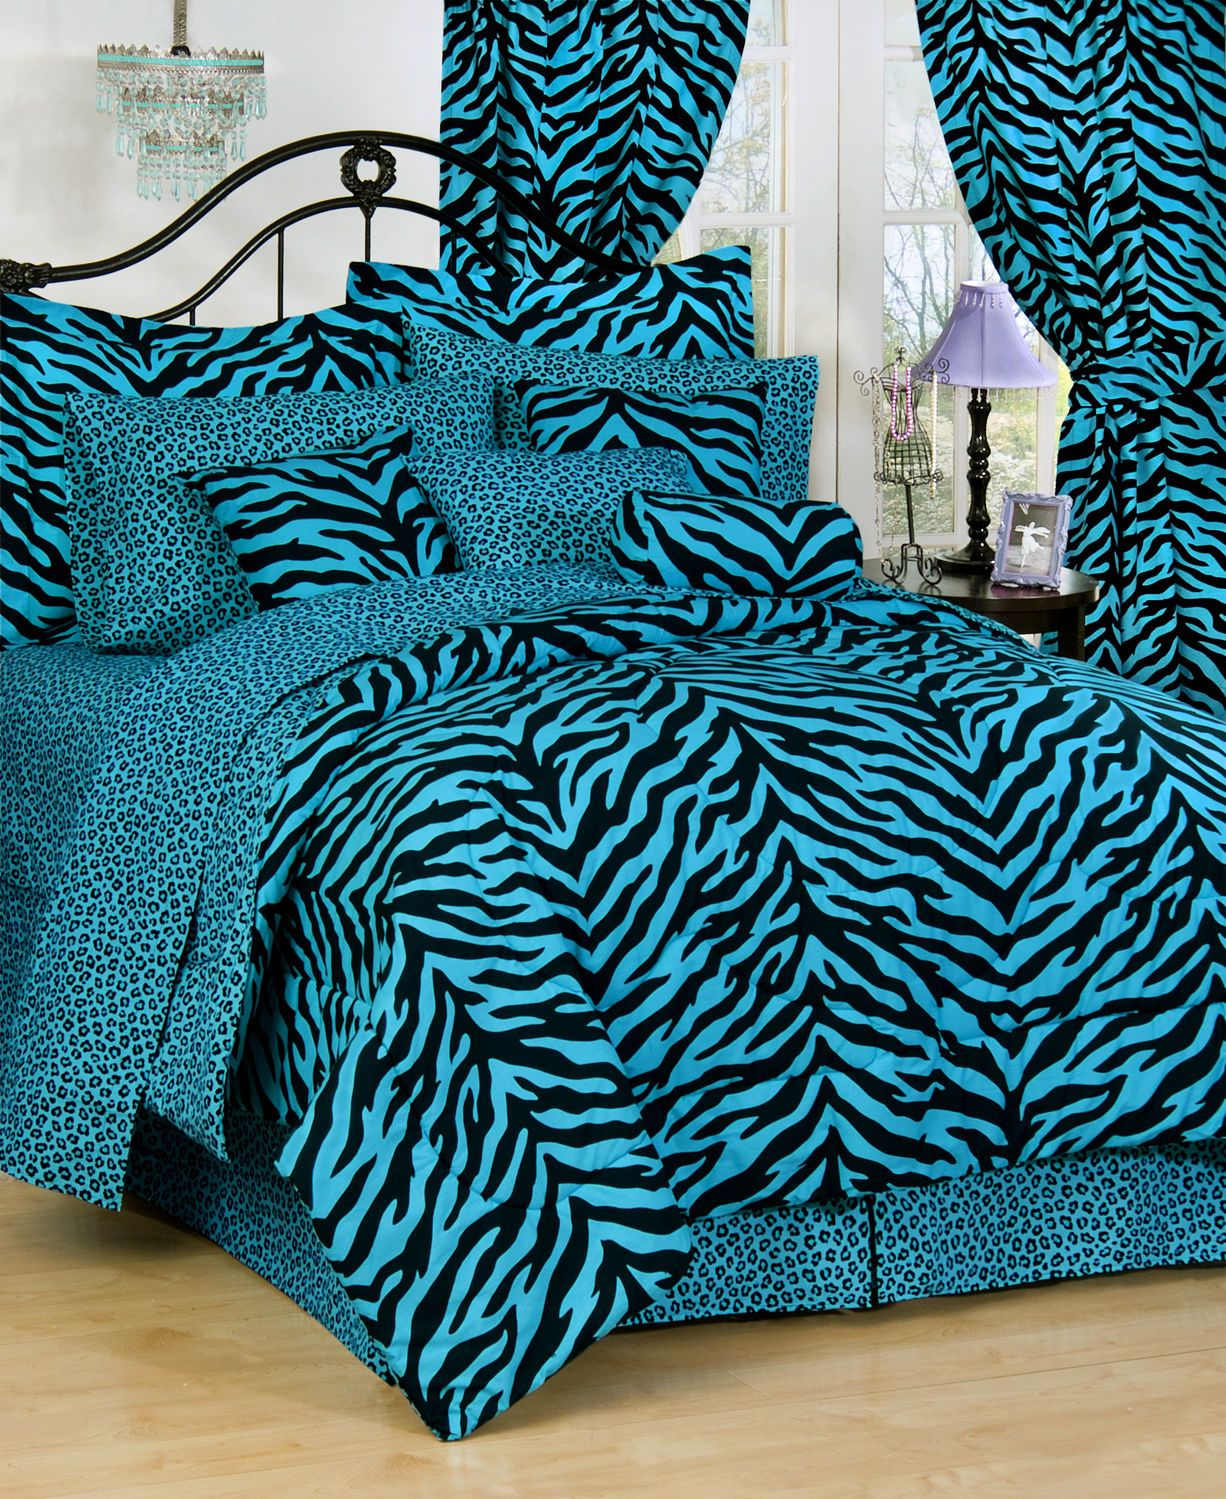 available in twin xl and perfect for dorm room beds pick a color